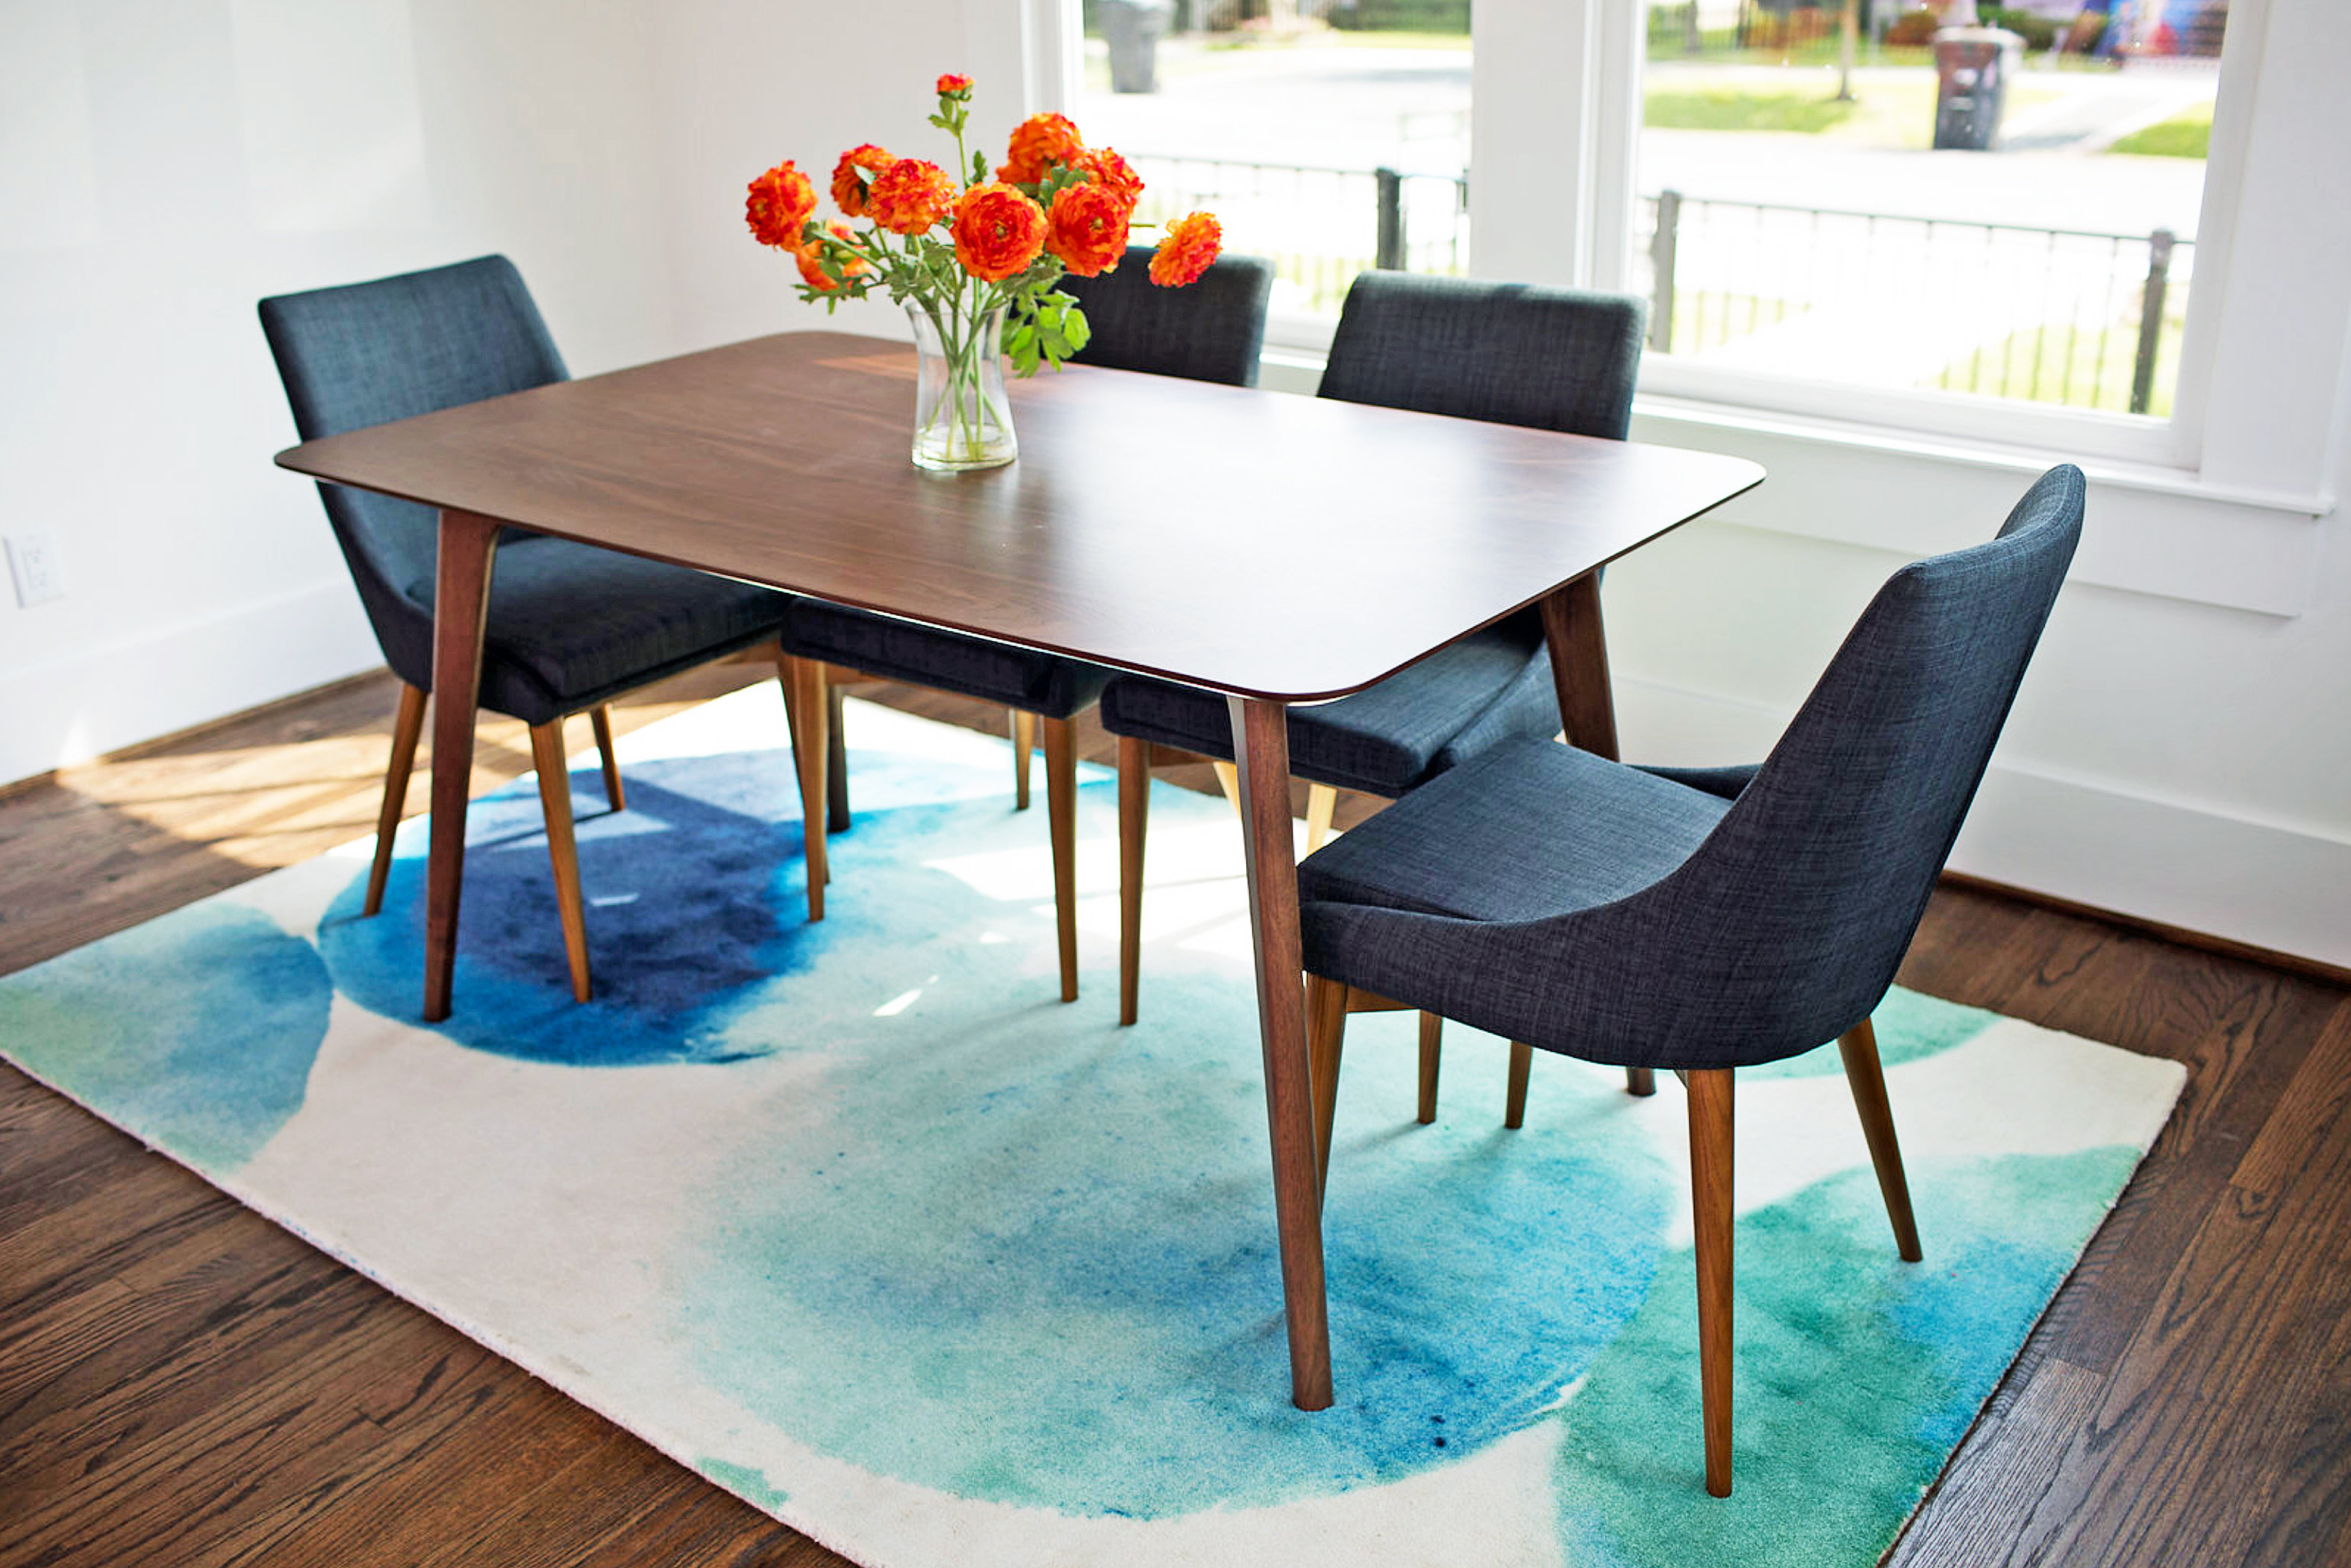 5 Piece Breakfast Nook Dining Sets Inside 2019 Corrigan Studio Anabelle 5 Piece Breakfast Nook Dining Set (View 16 of 25)